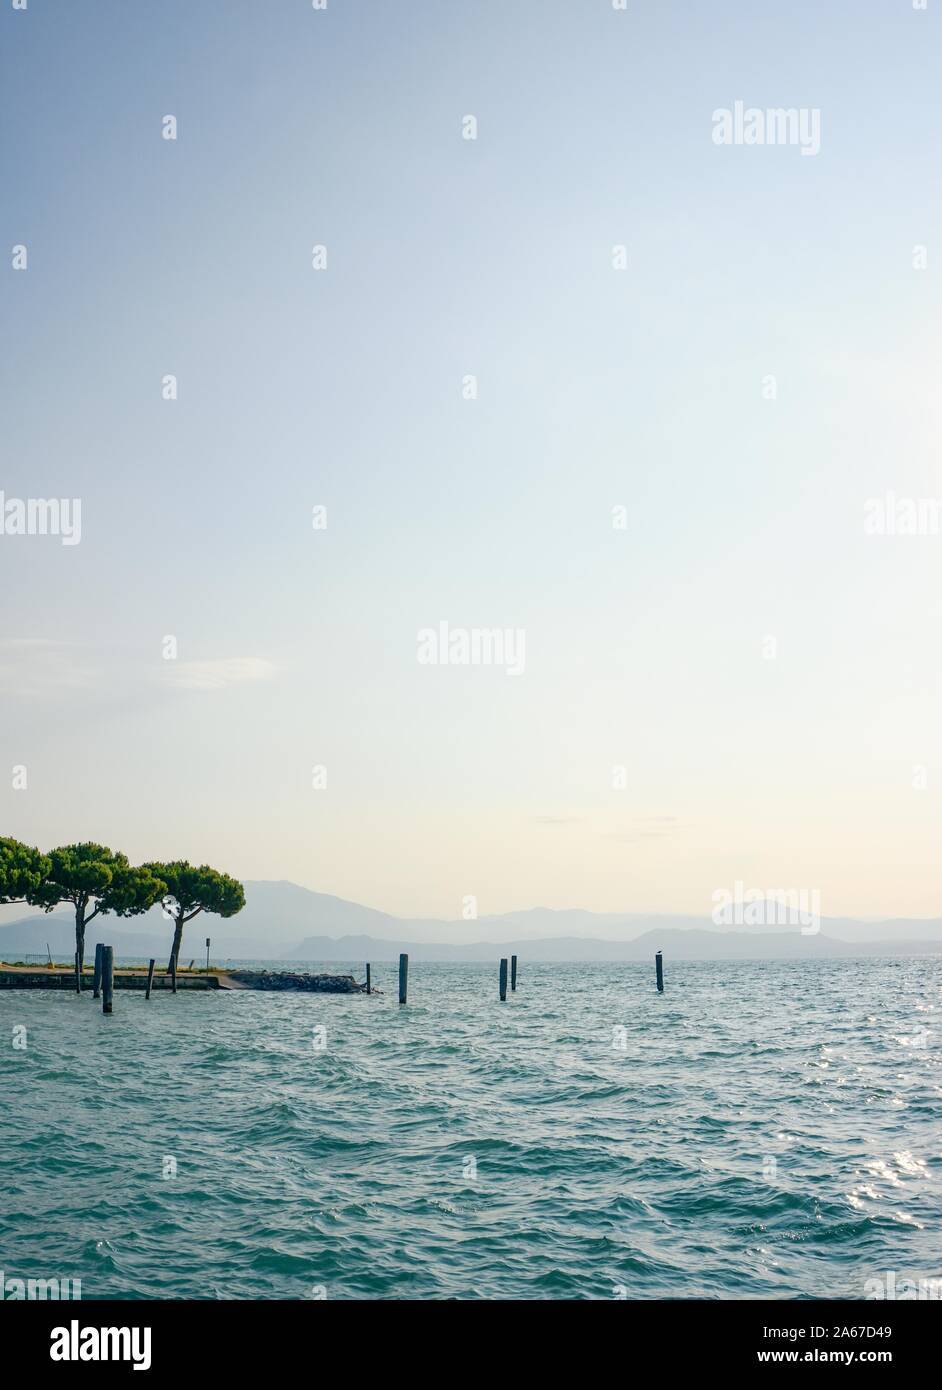 Vertical photo with view over Lago di Garda. Hills and mountains are hidden in fog in background. Few pine trees are on side next to wooden pales in w Stock Photo